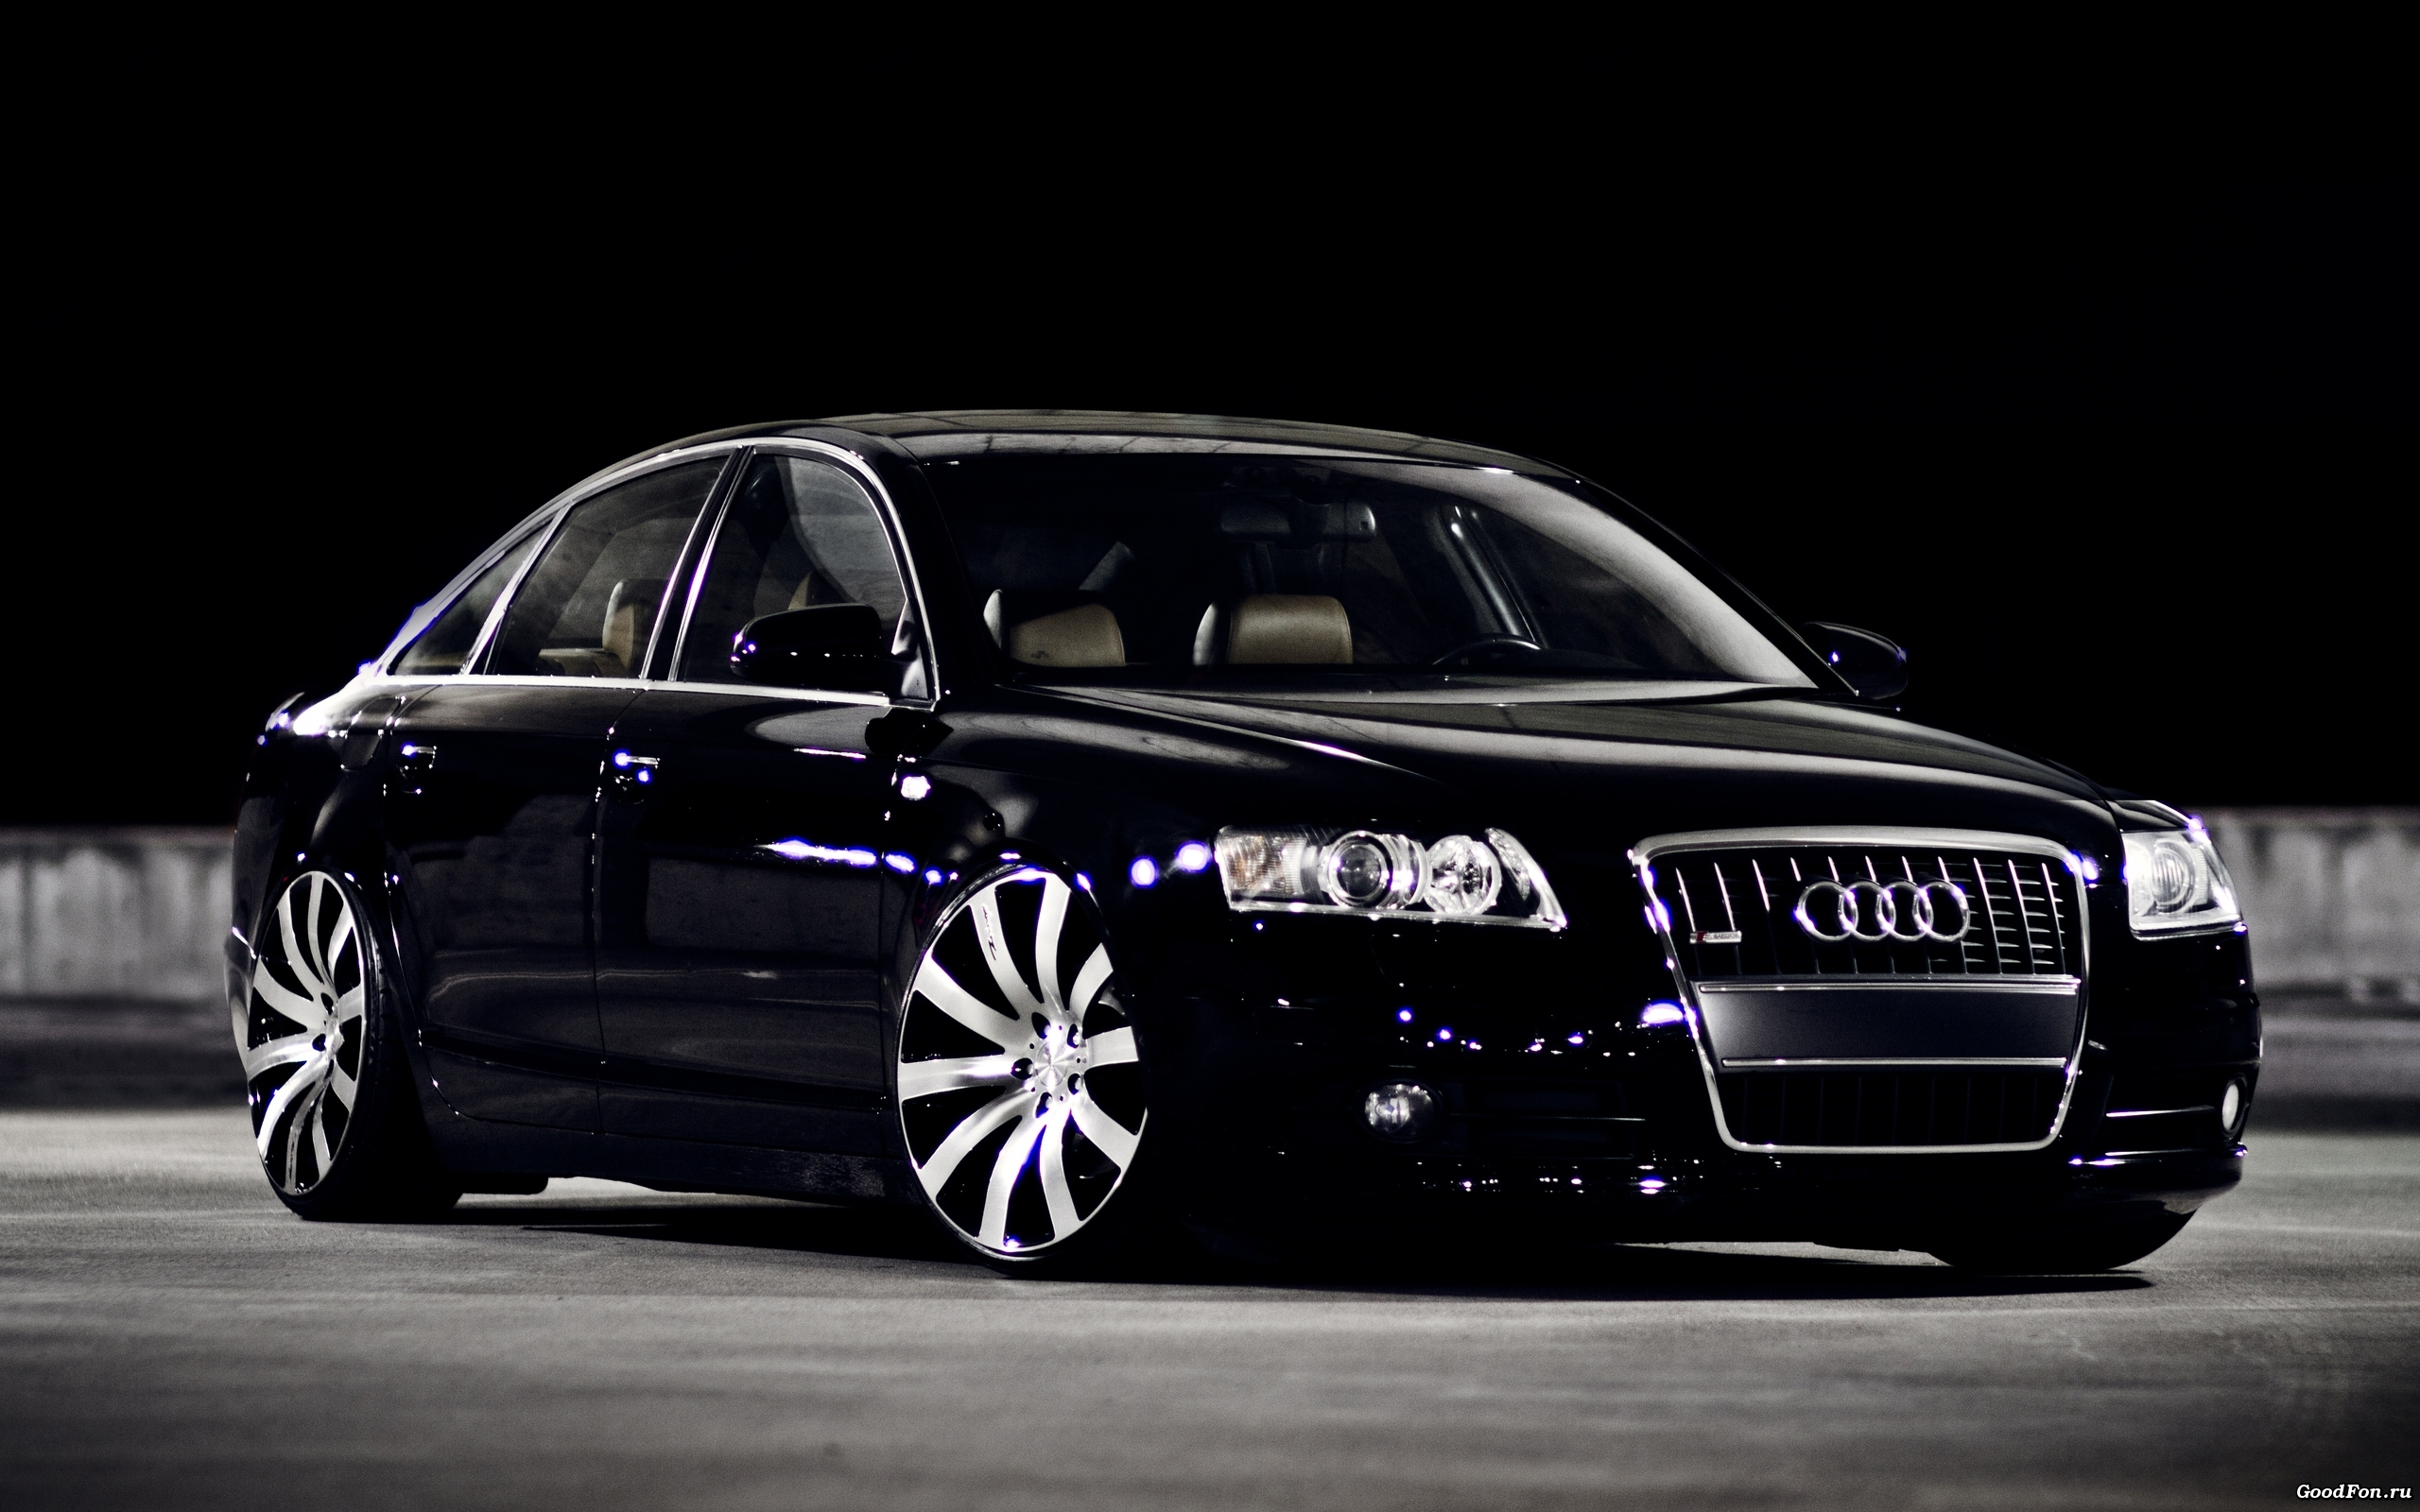 26872 download wallpaper Auto, Audi, Transport screensavers and pictures for free